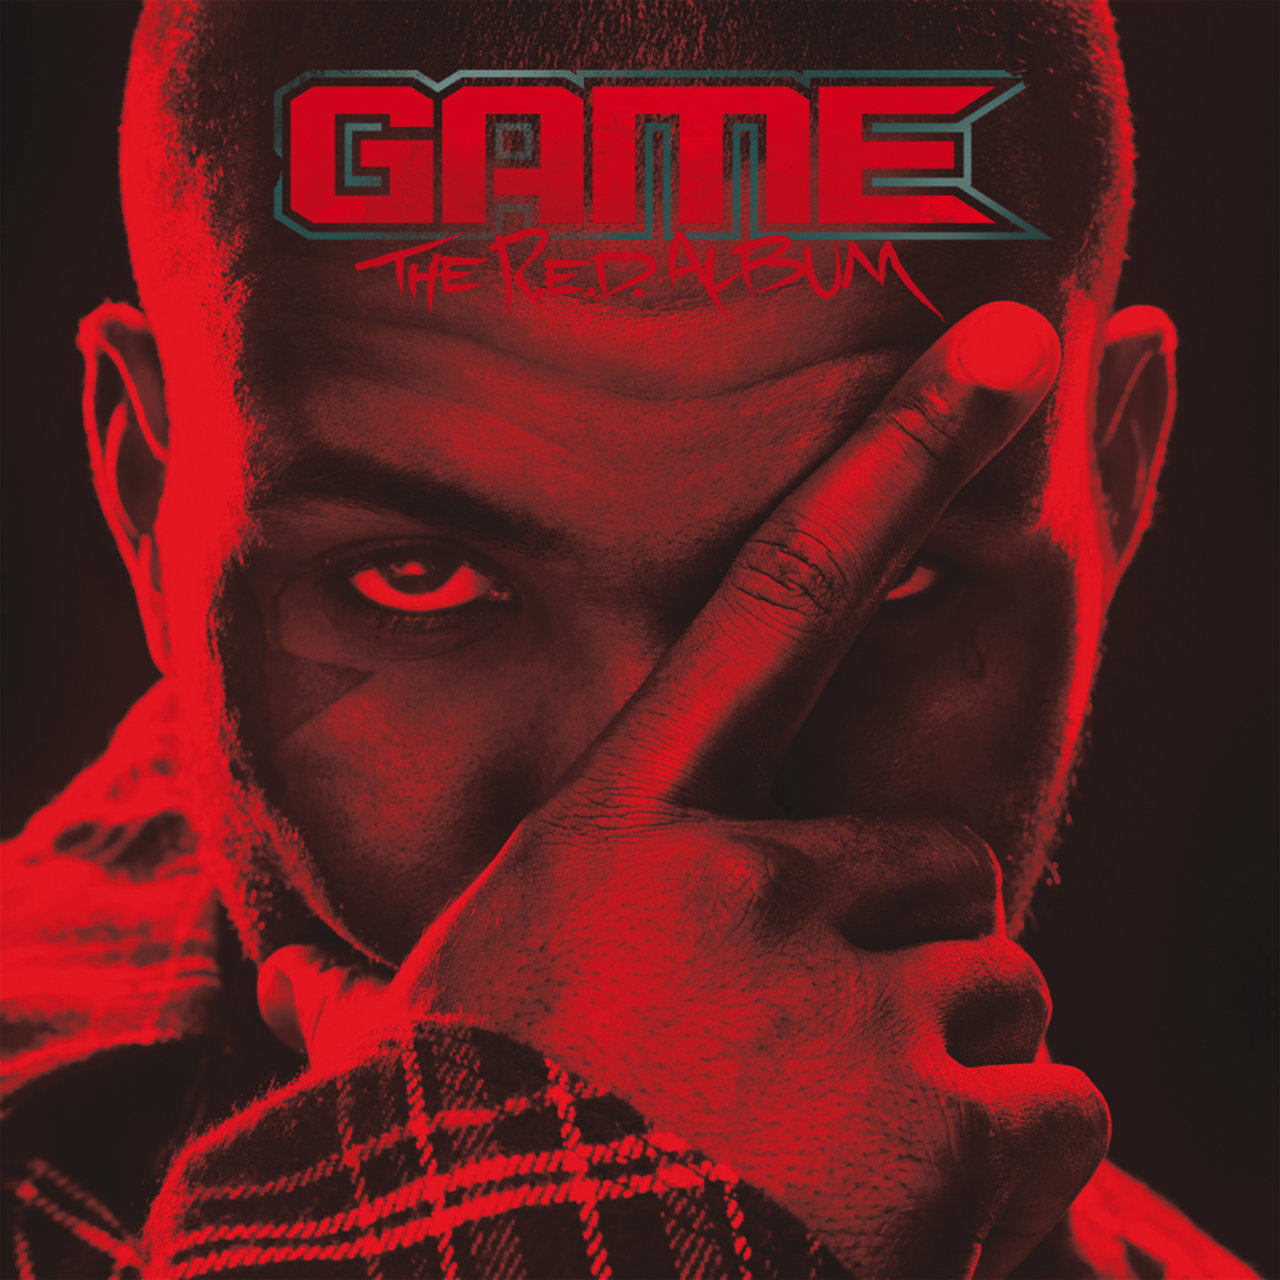 Album Title: The RED Album by: The Game